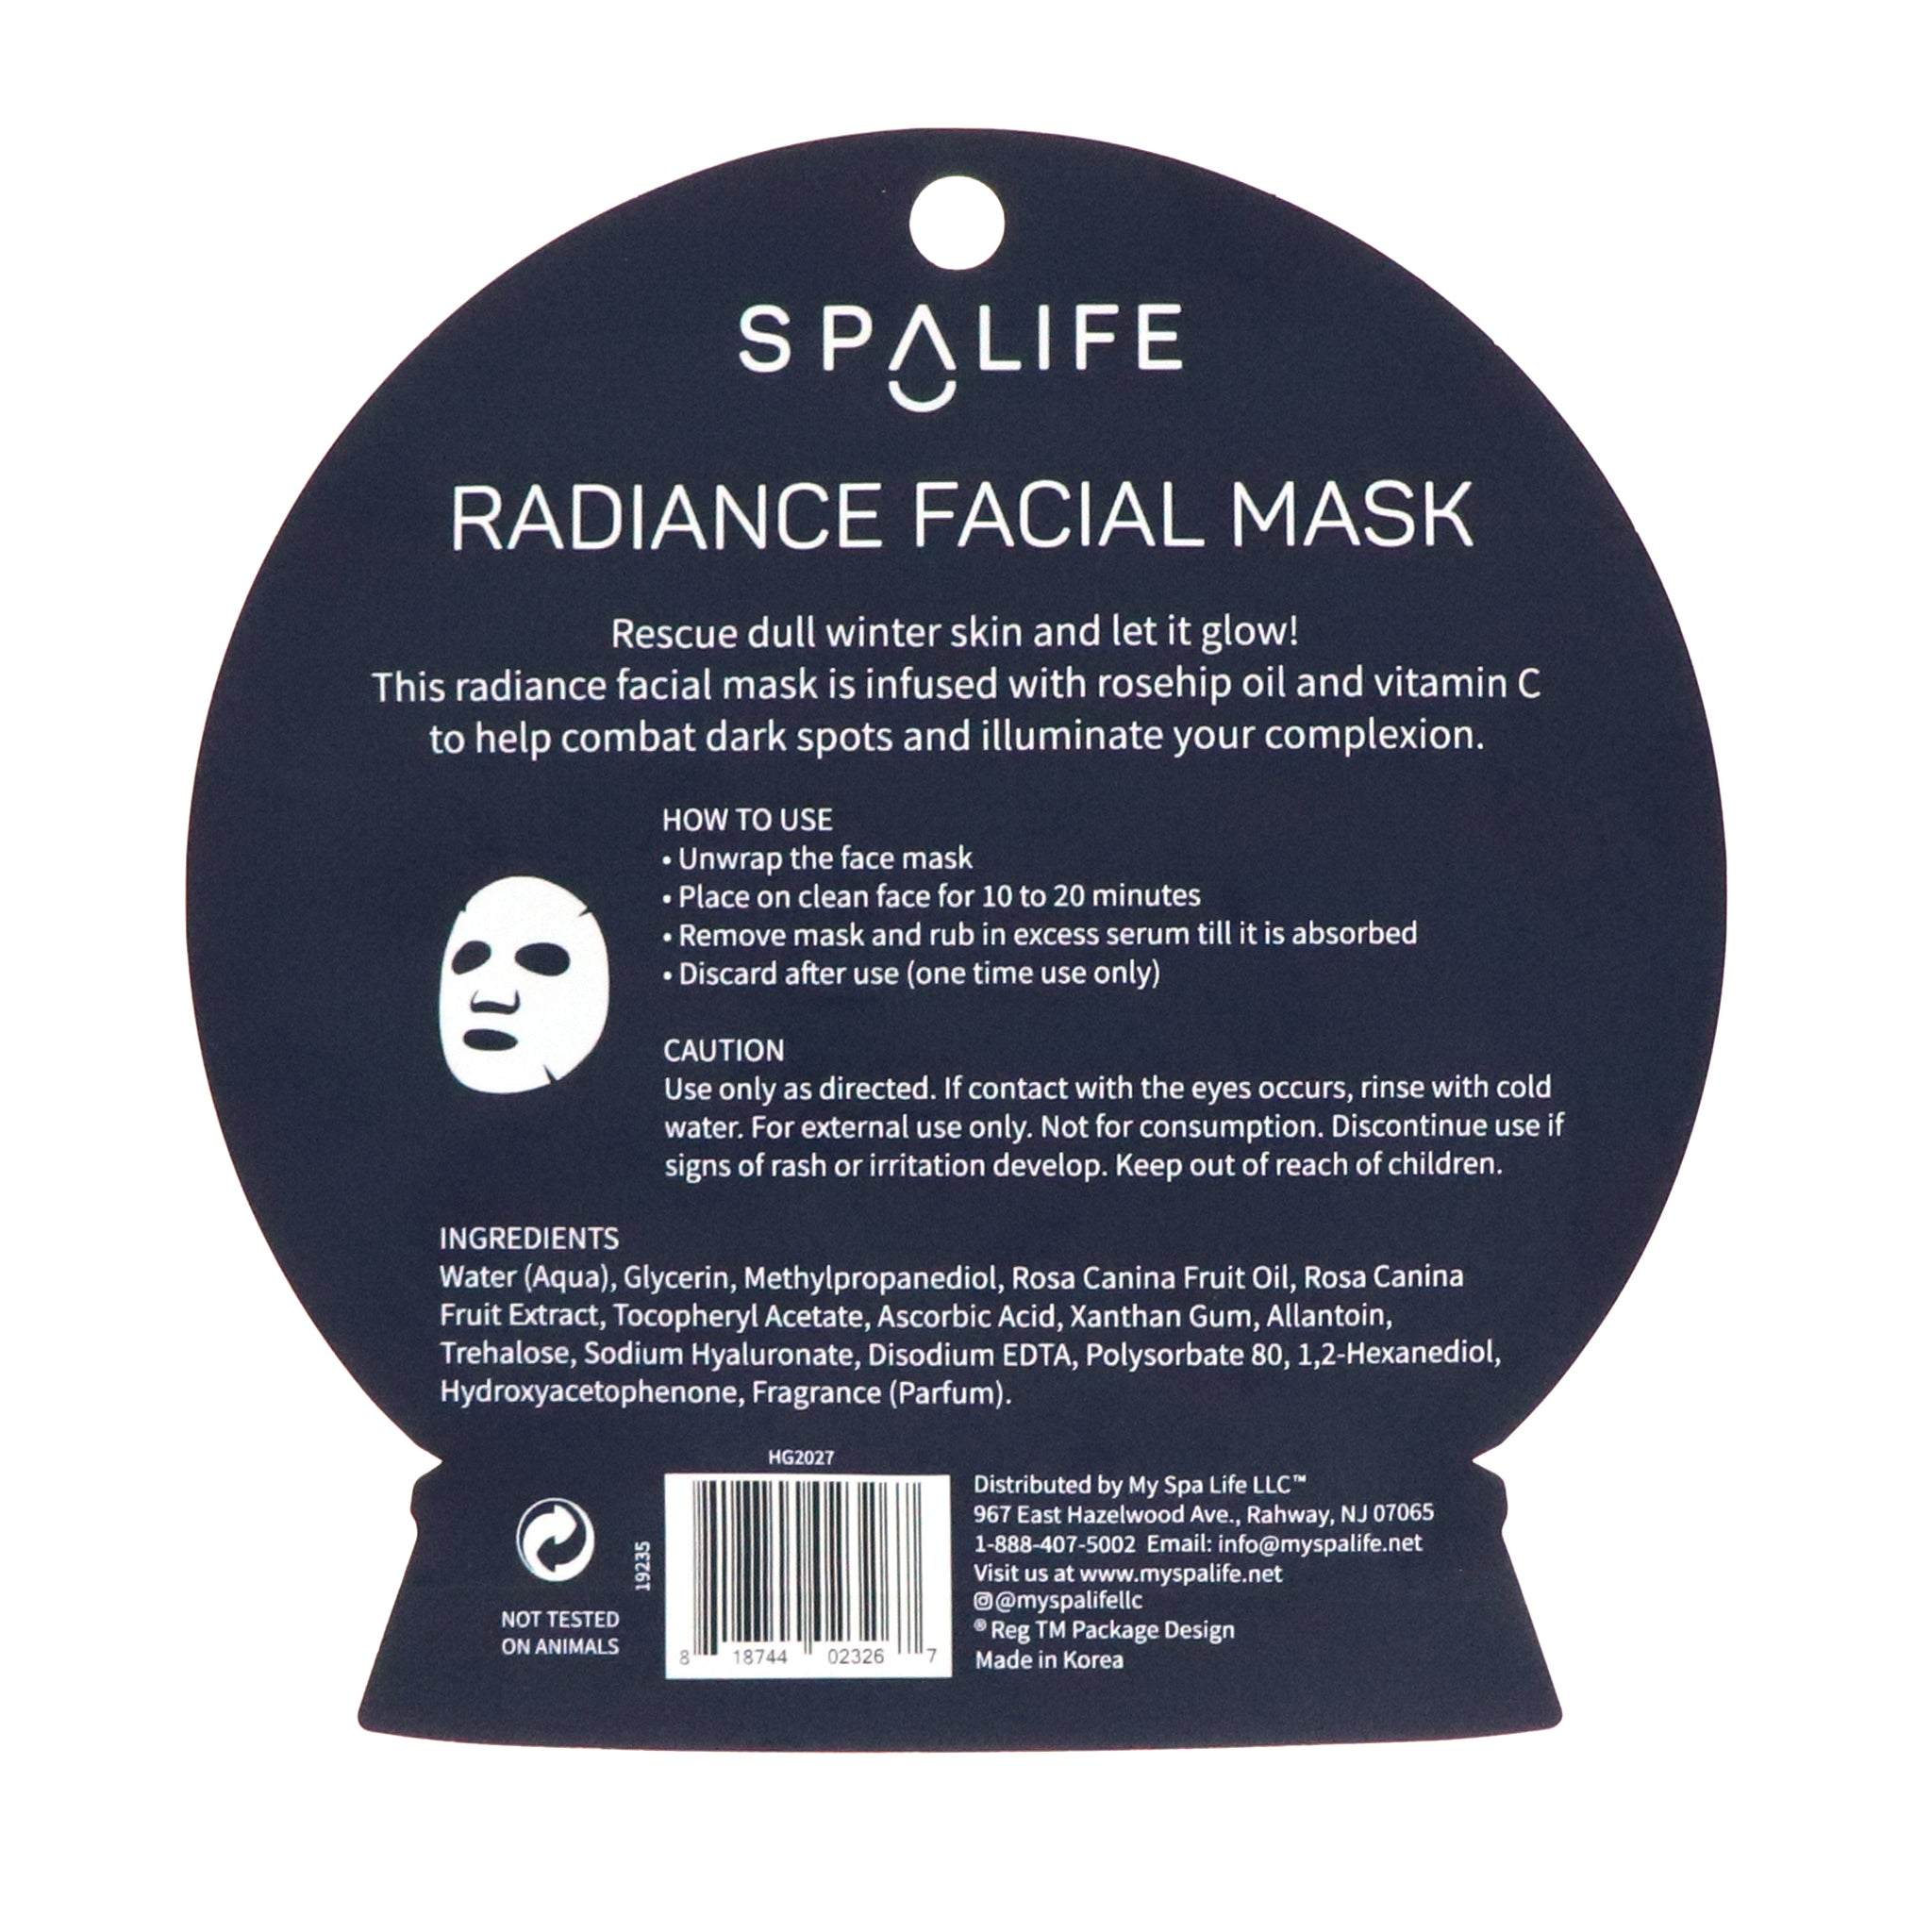 Let it Glow - Radiance Facial Mask